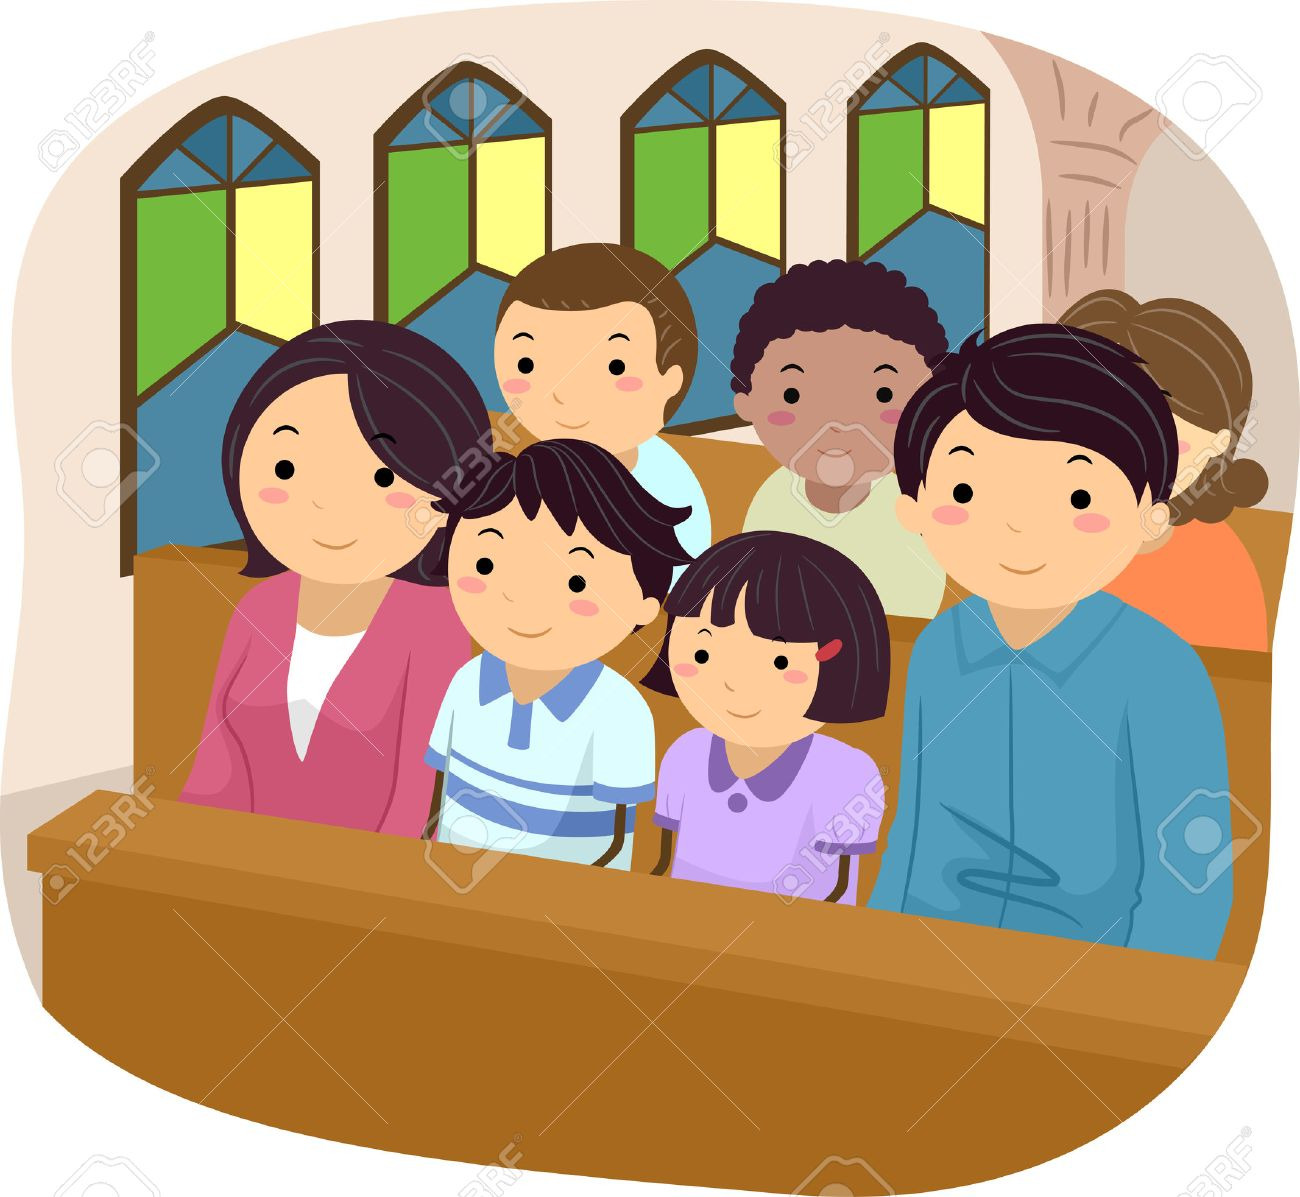 Stickman Illustration of a Family Attending Mass Together - 57058406